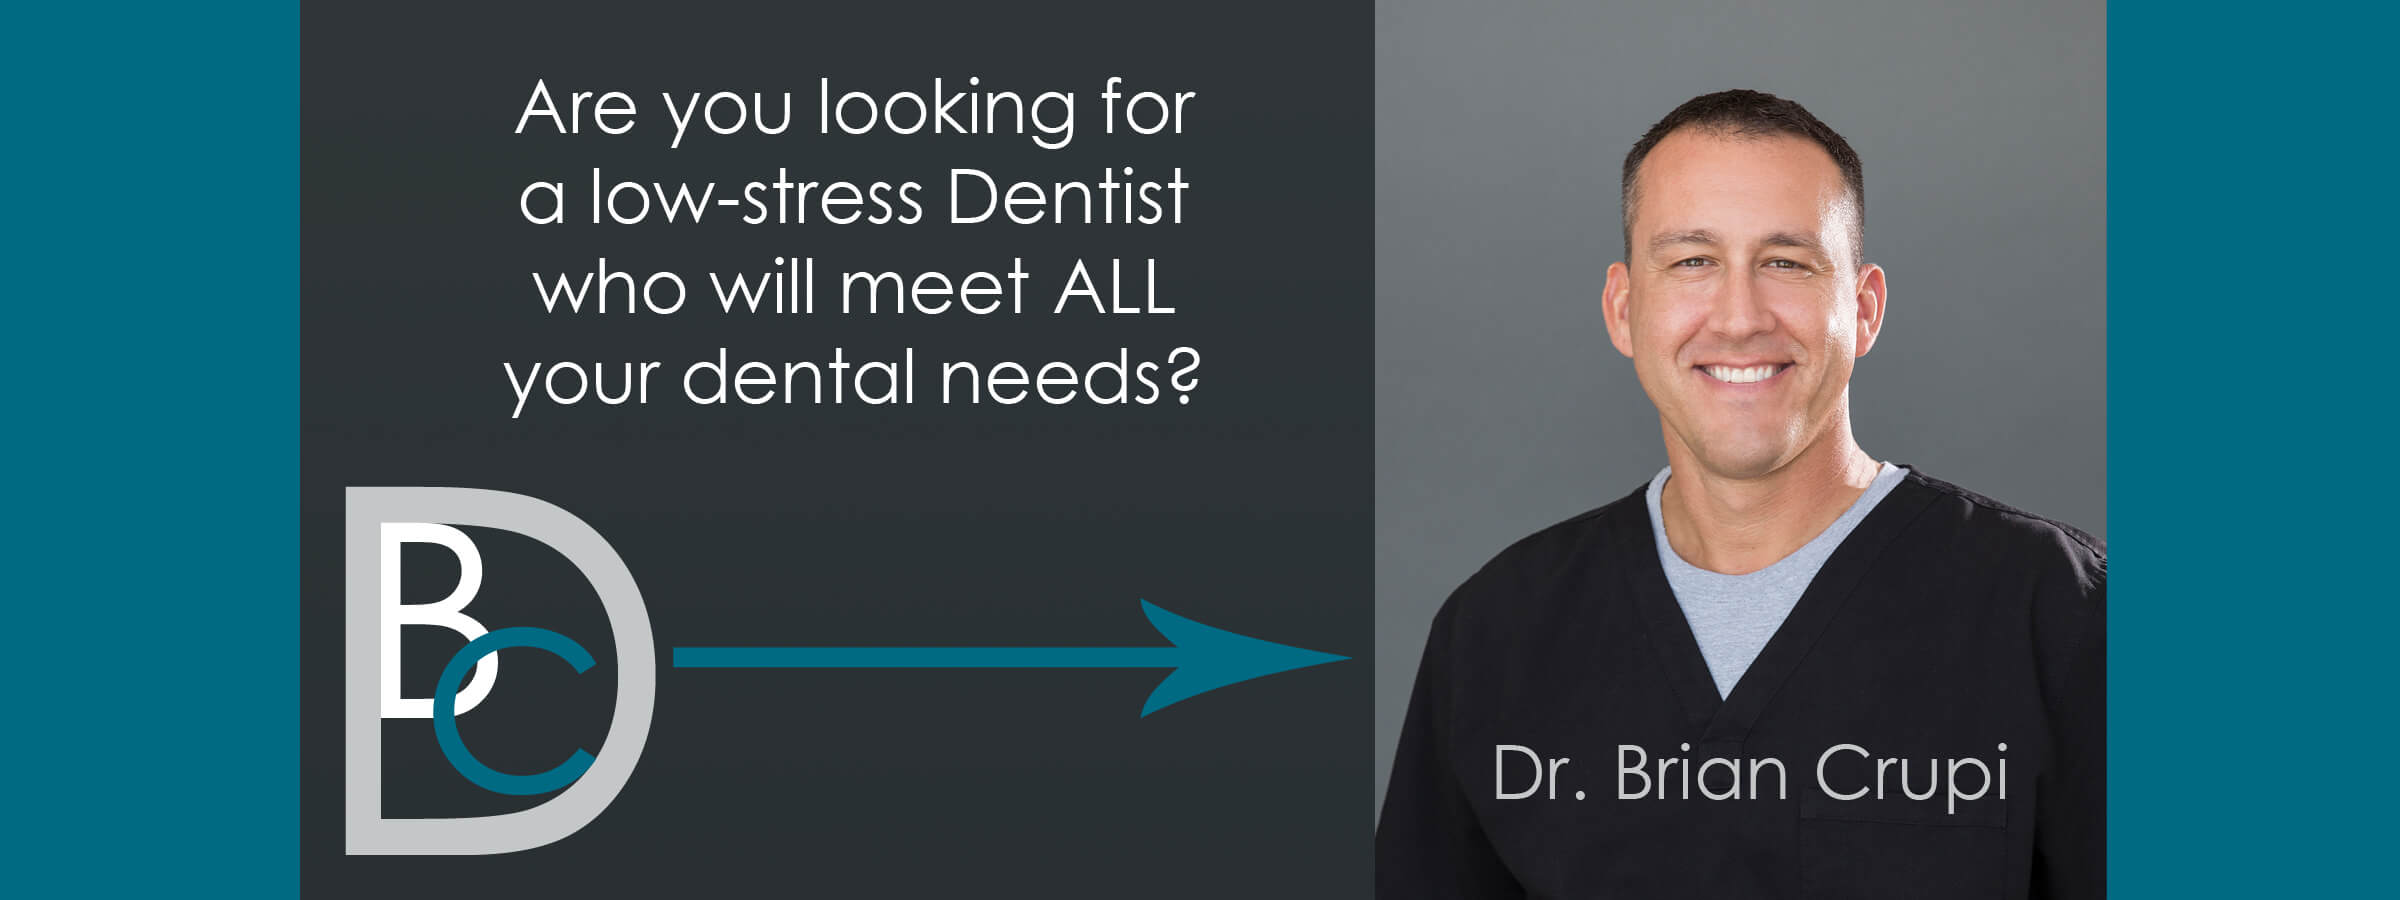 Are you looking for a low-stress dentist who will meet all your dental needs? Dr. Brian Crupi